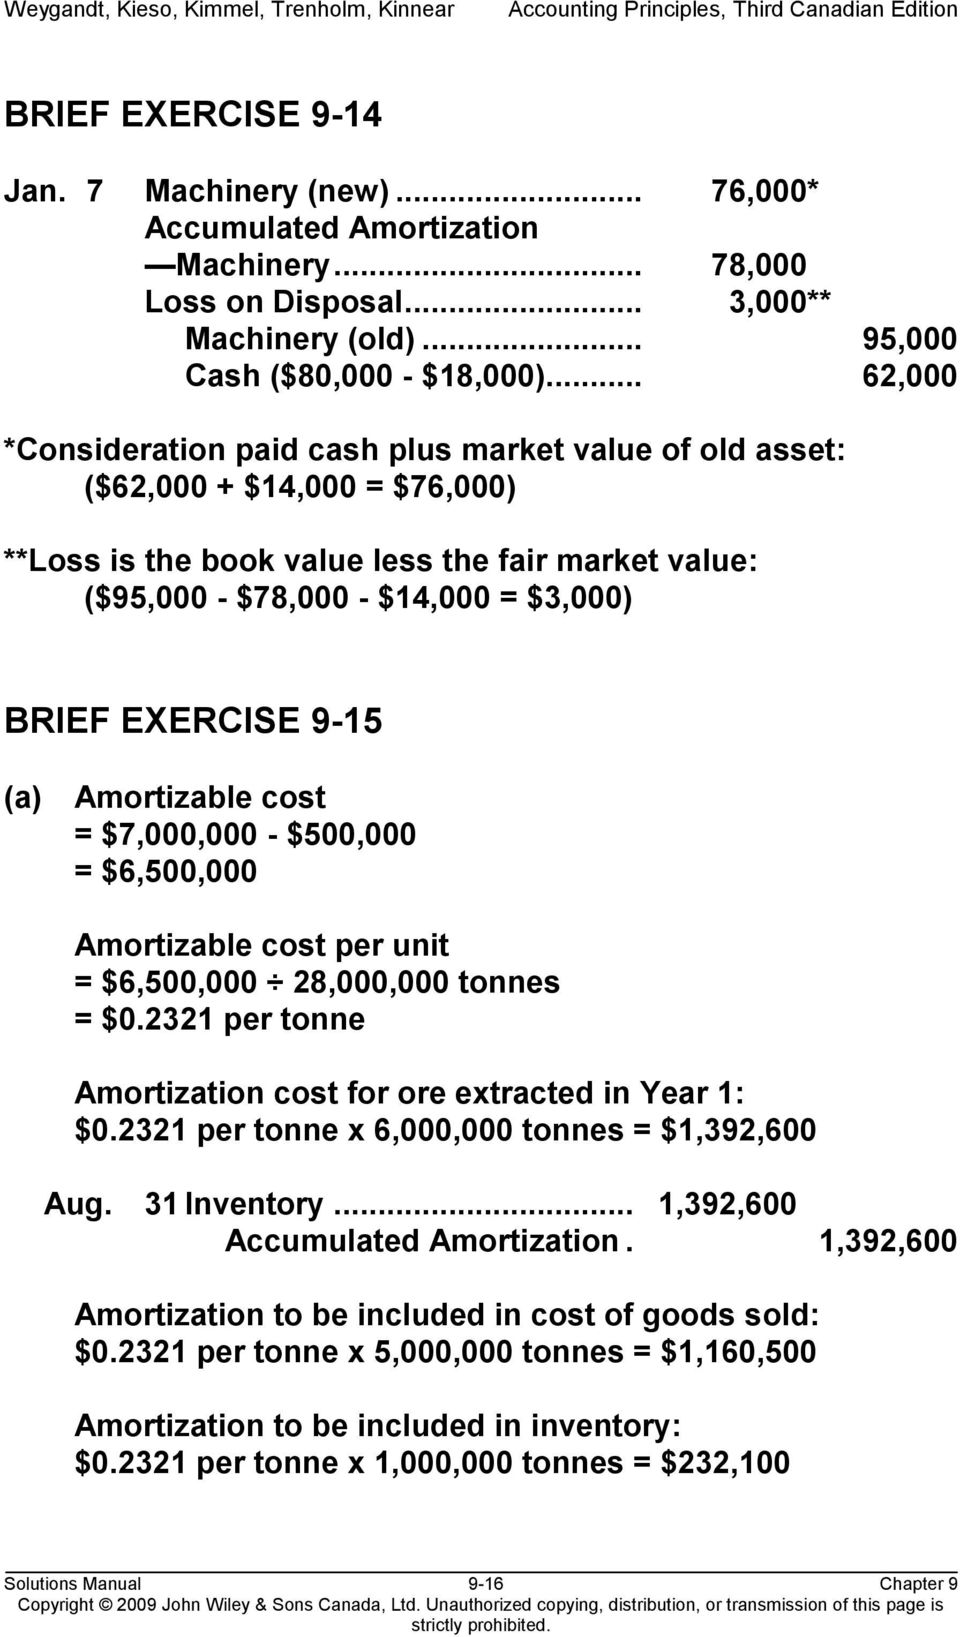 EXERCISE 9-15 (a) Amortizable cost = $7,000,000 - $500,000 = $6,500,000 Amortizable cost per unit = $6,500,000 28,000,000 tonnes = $0.2321 per tonne Amortization cost for ore extracted in Year 1: $0.